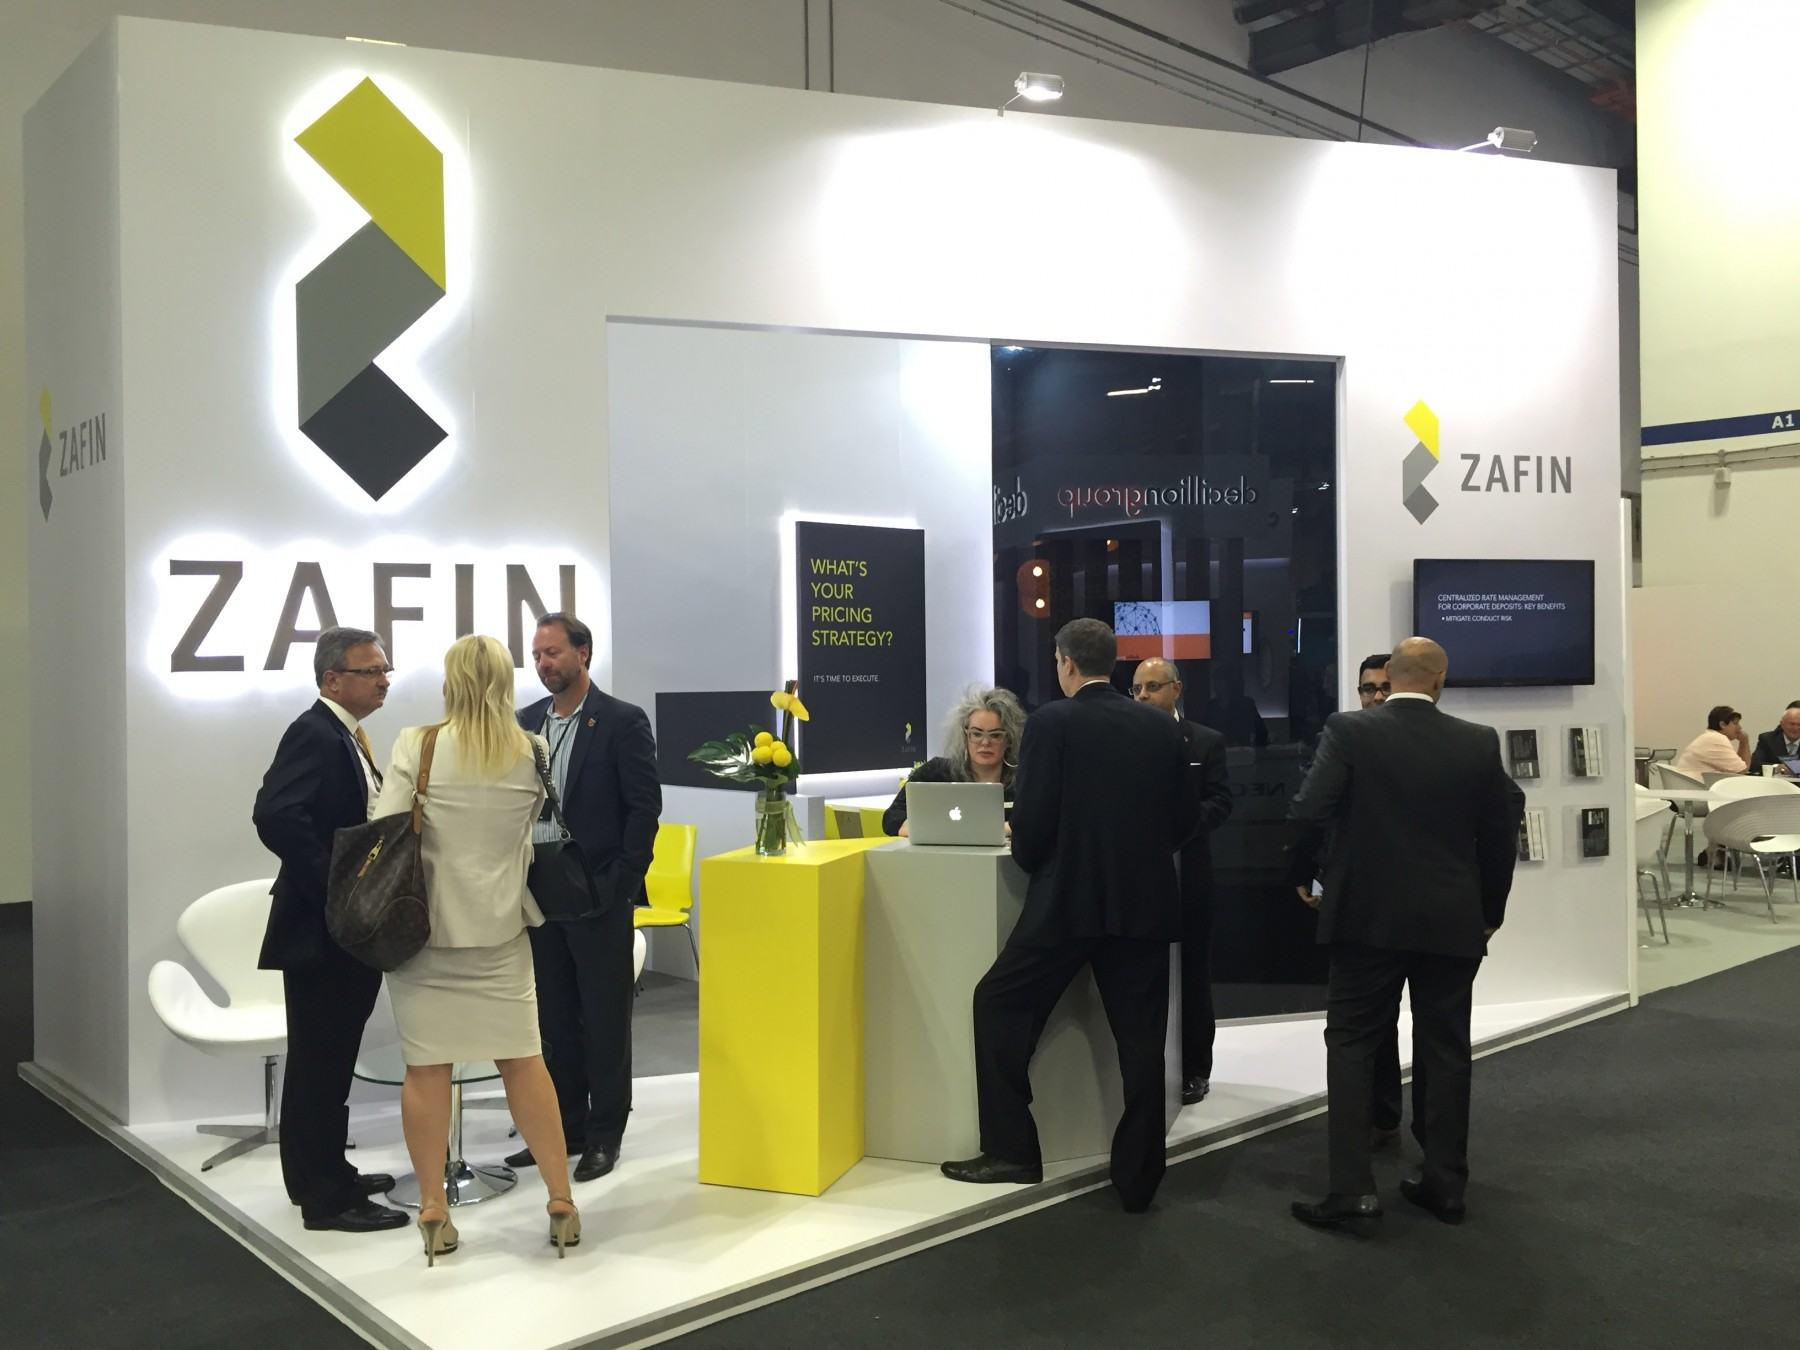 Accenture completes acquisition of Canadian firm Zafin